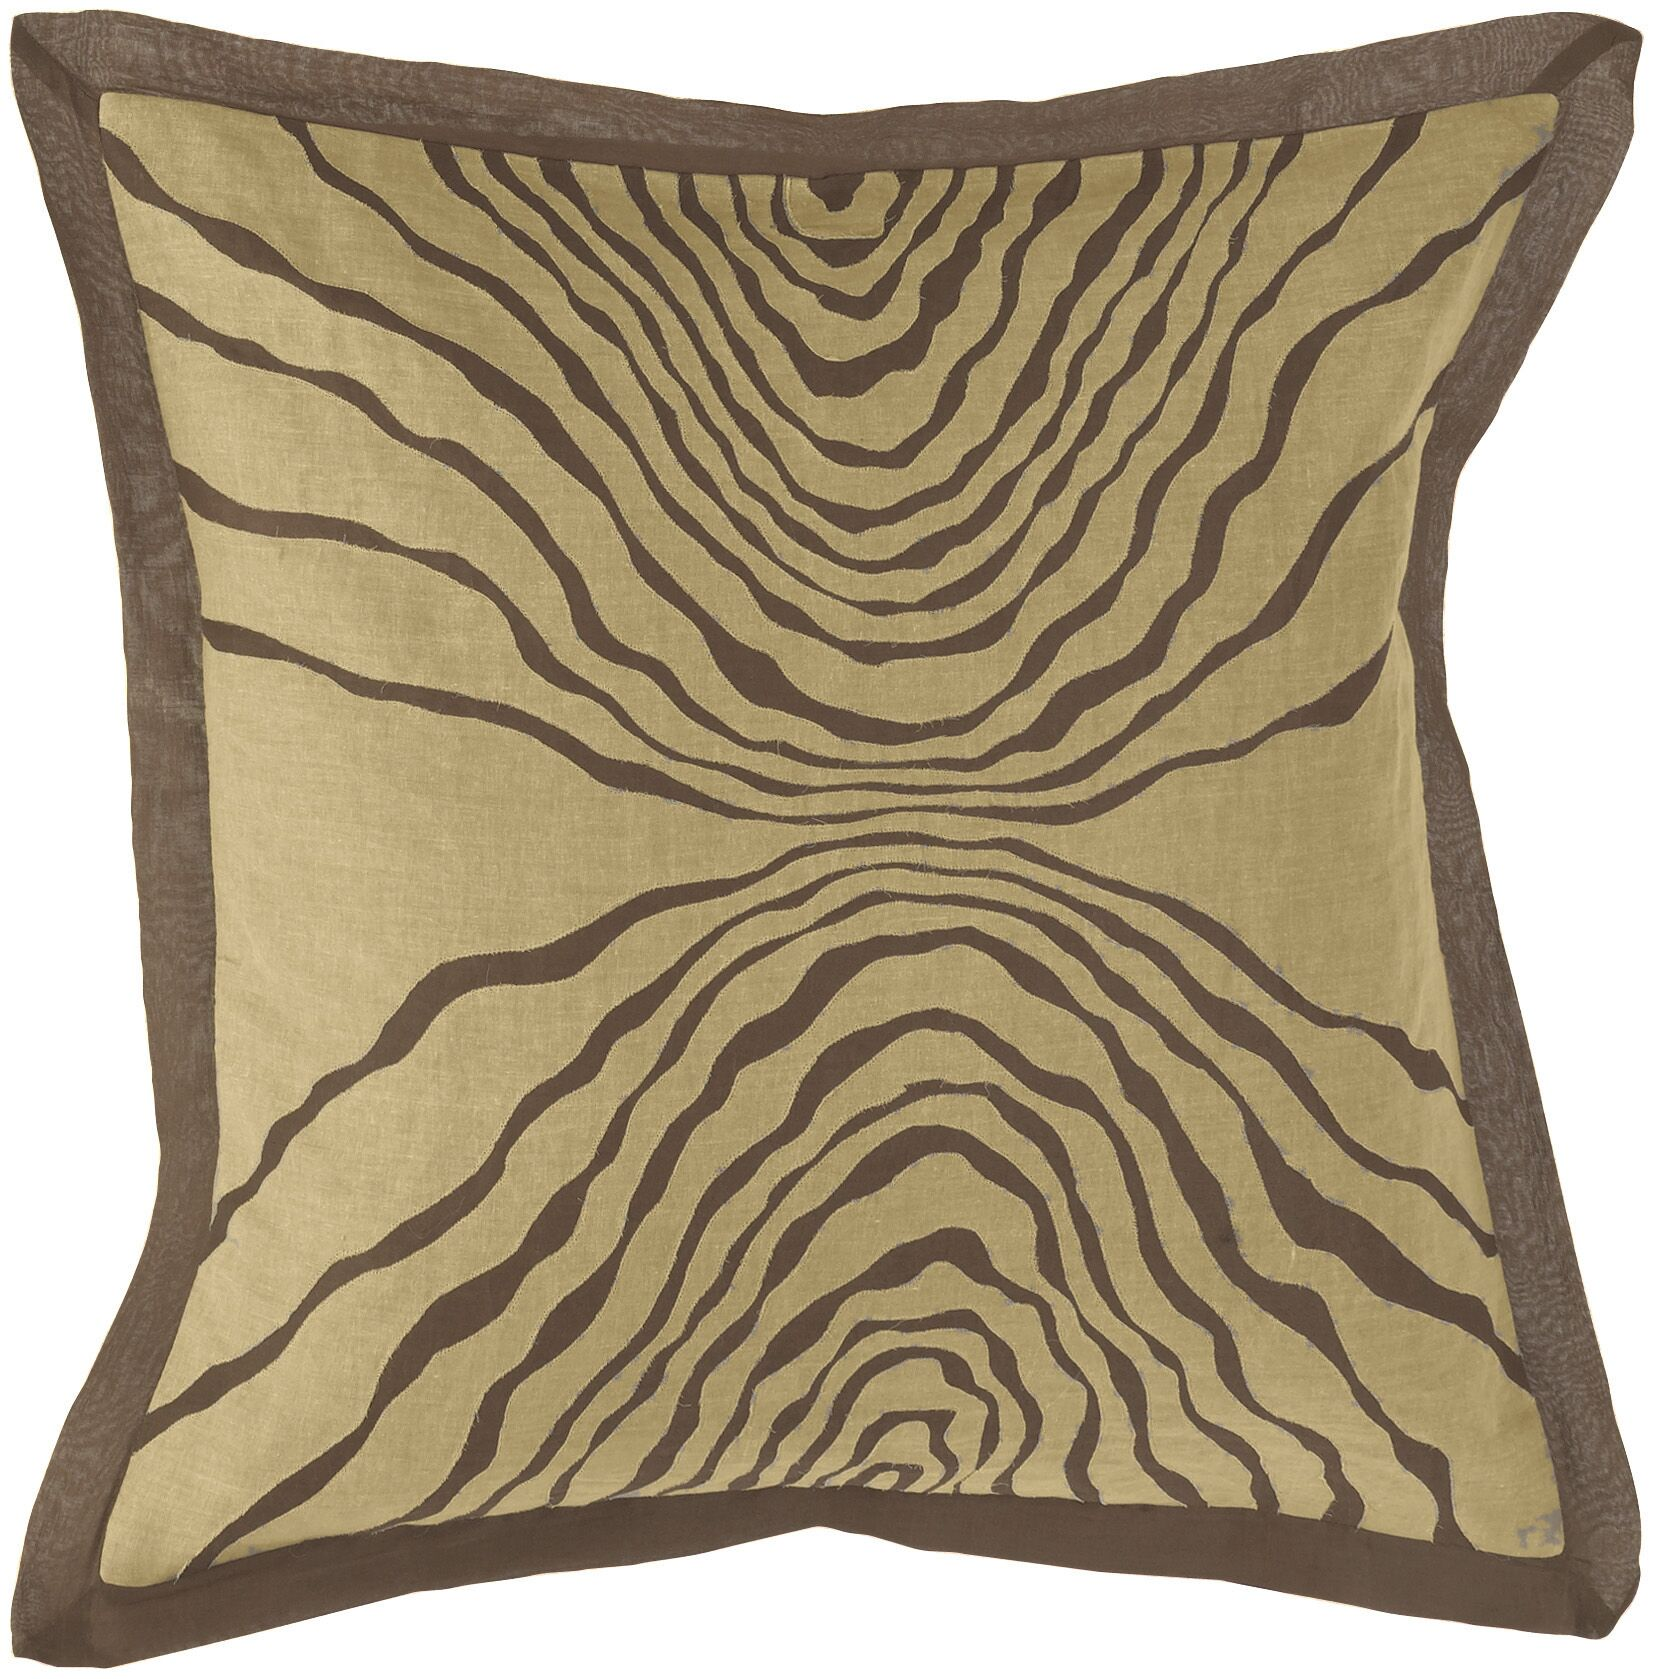 Inverted Throw Pillow Fill Material: Polyester